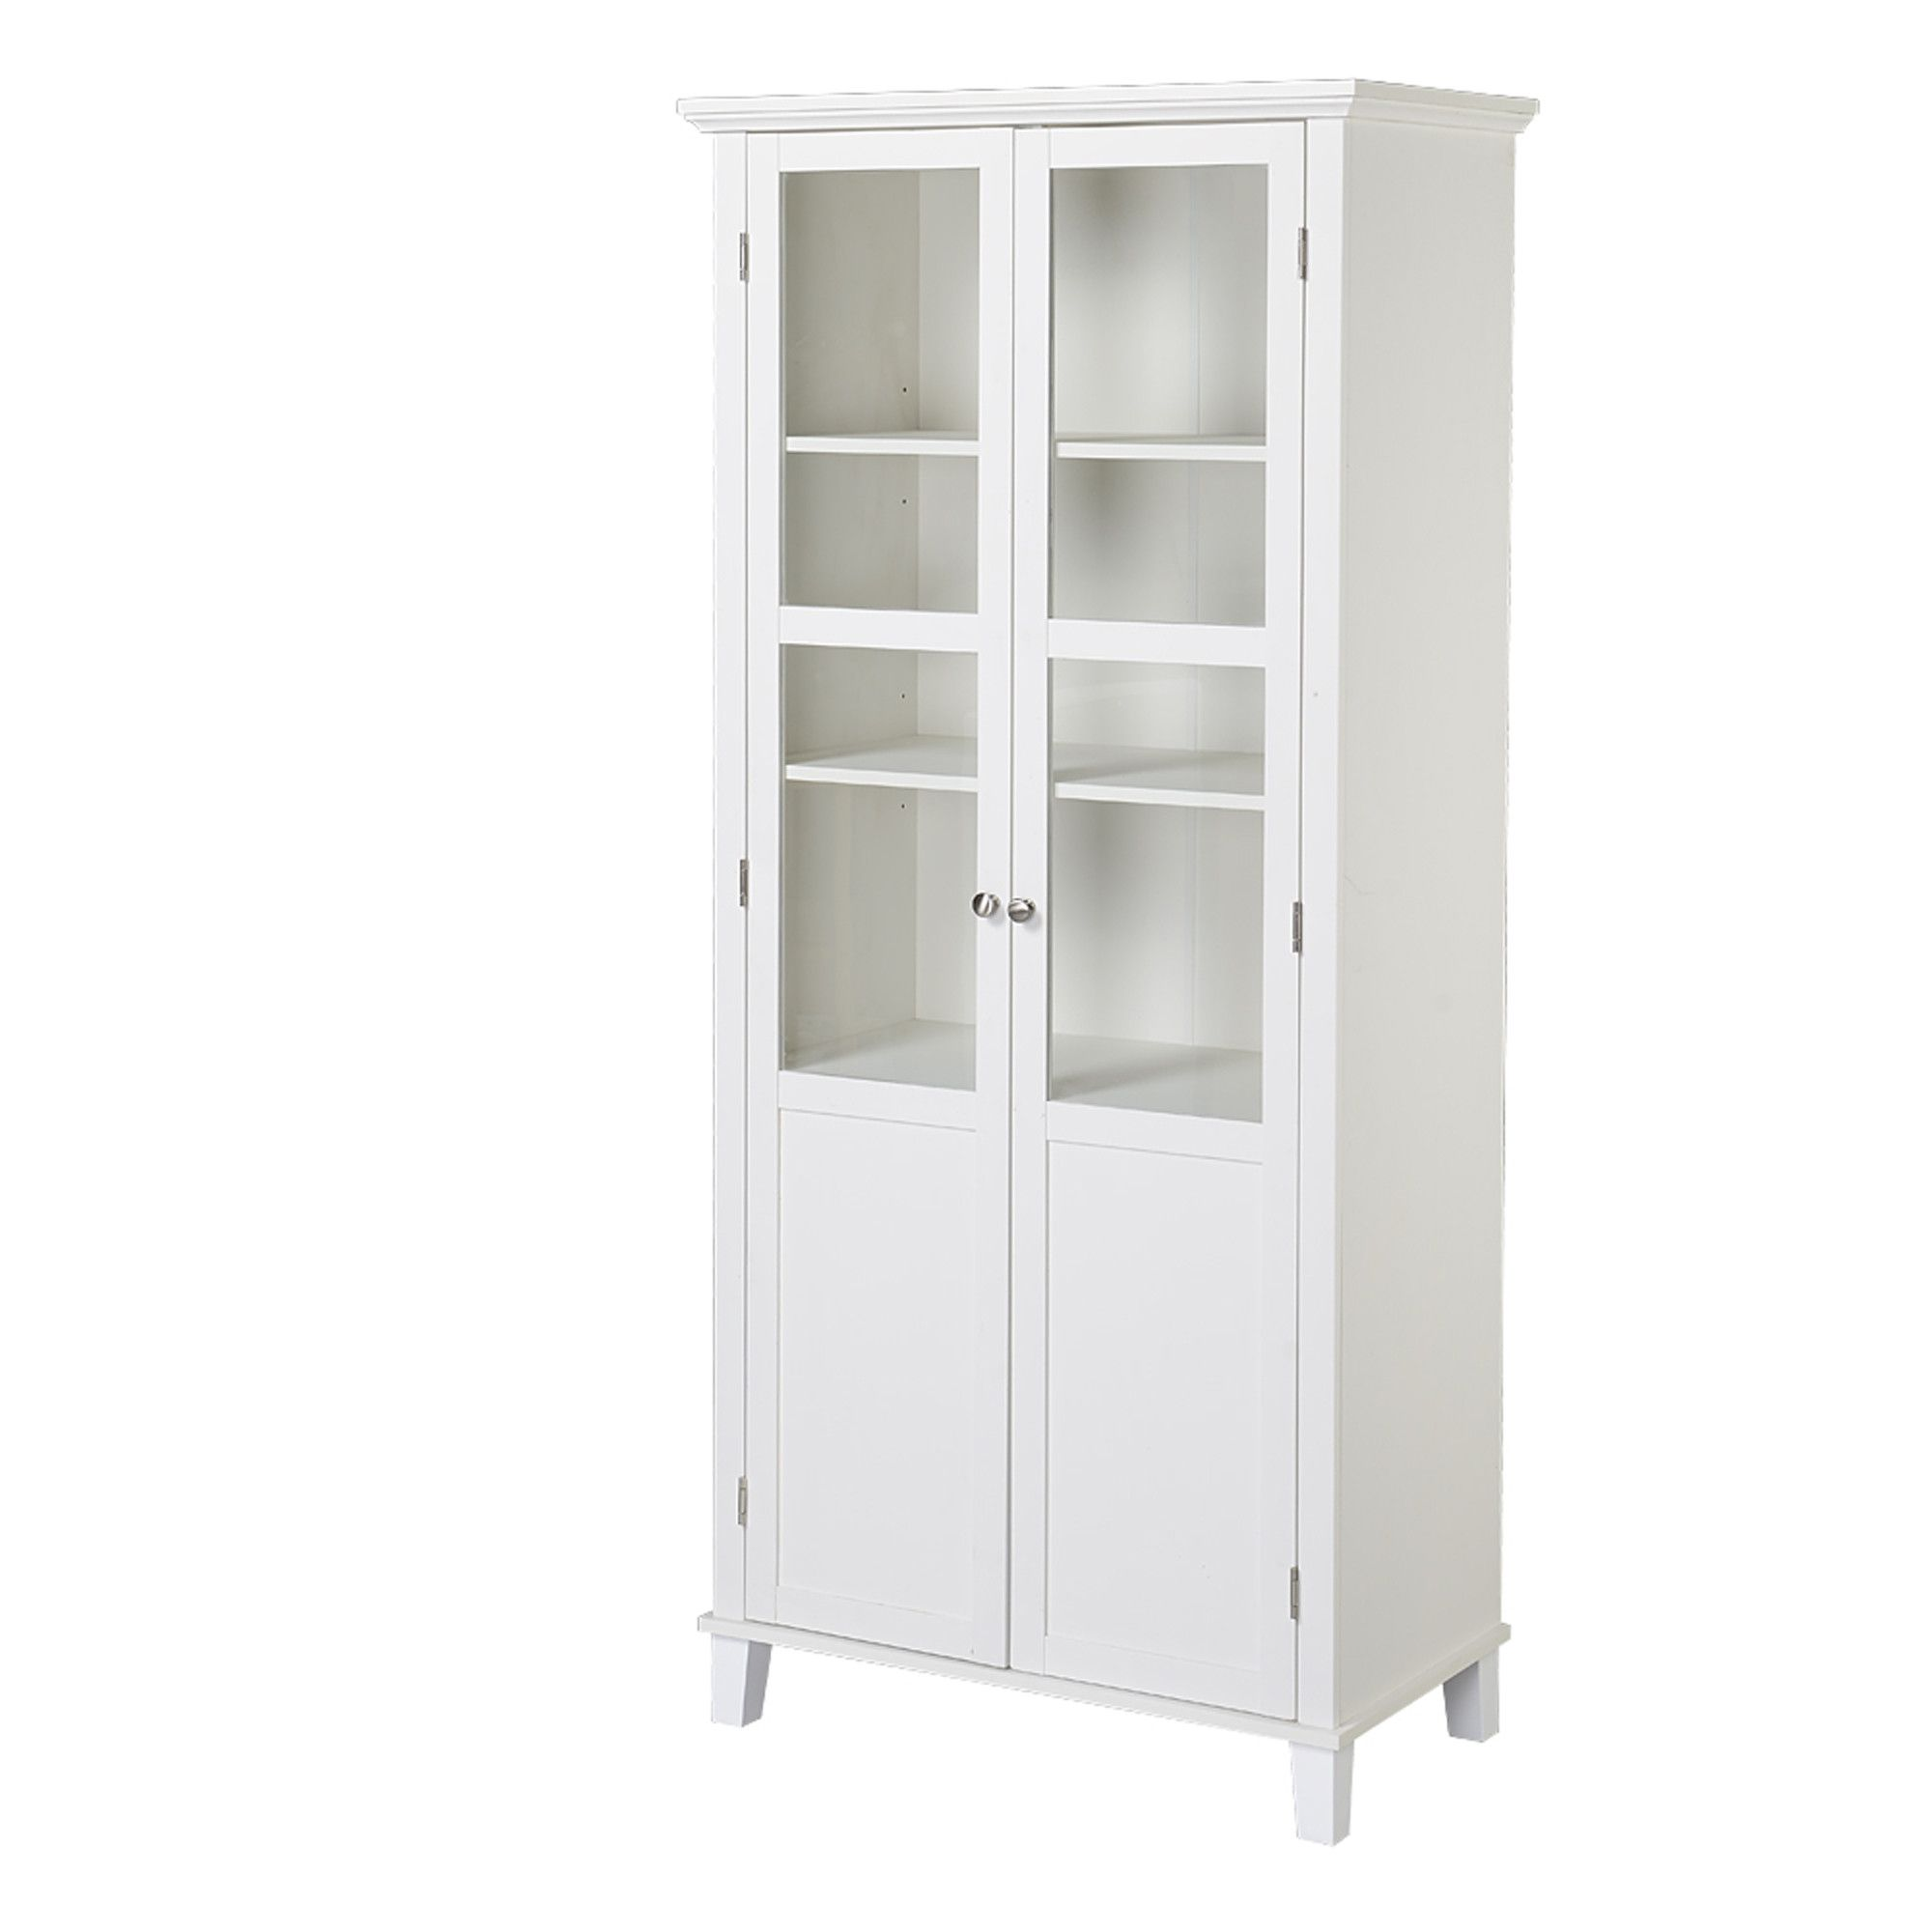 Latitude Run Hamilton 2 Door Storage Cabinet Reviews Wayfair Kitchen Pantry Storage Pantry Storage Pantry Storage Cabinet